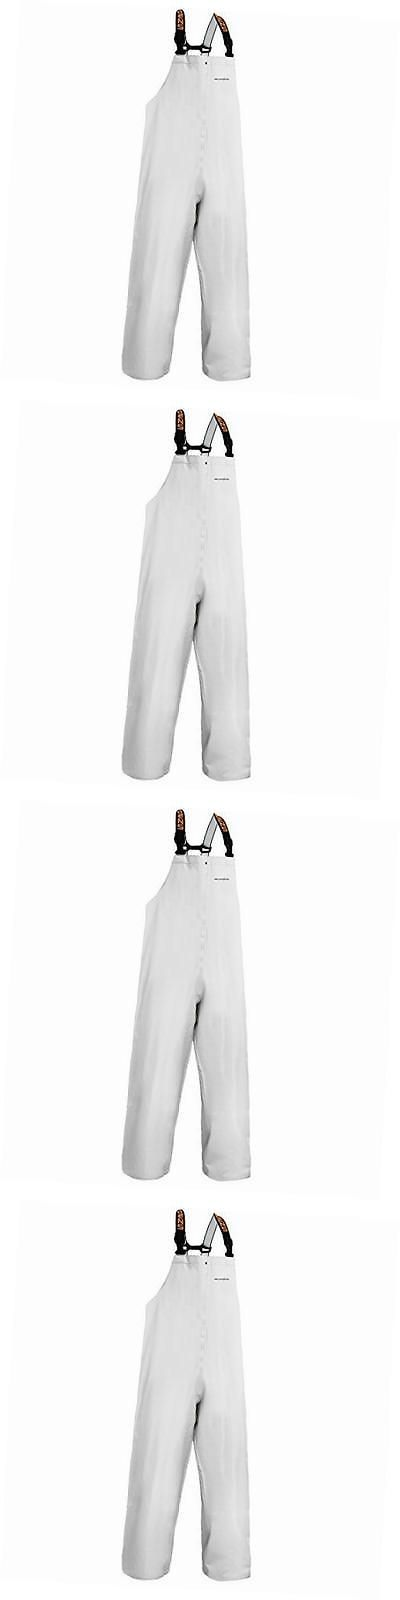 Jacket and Pants Sets 179981: Clipper Men S Bib Pant, White, Medium -> BUY IT NOW ONLY: $123.14 on eBay!